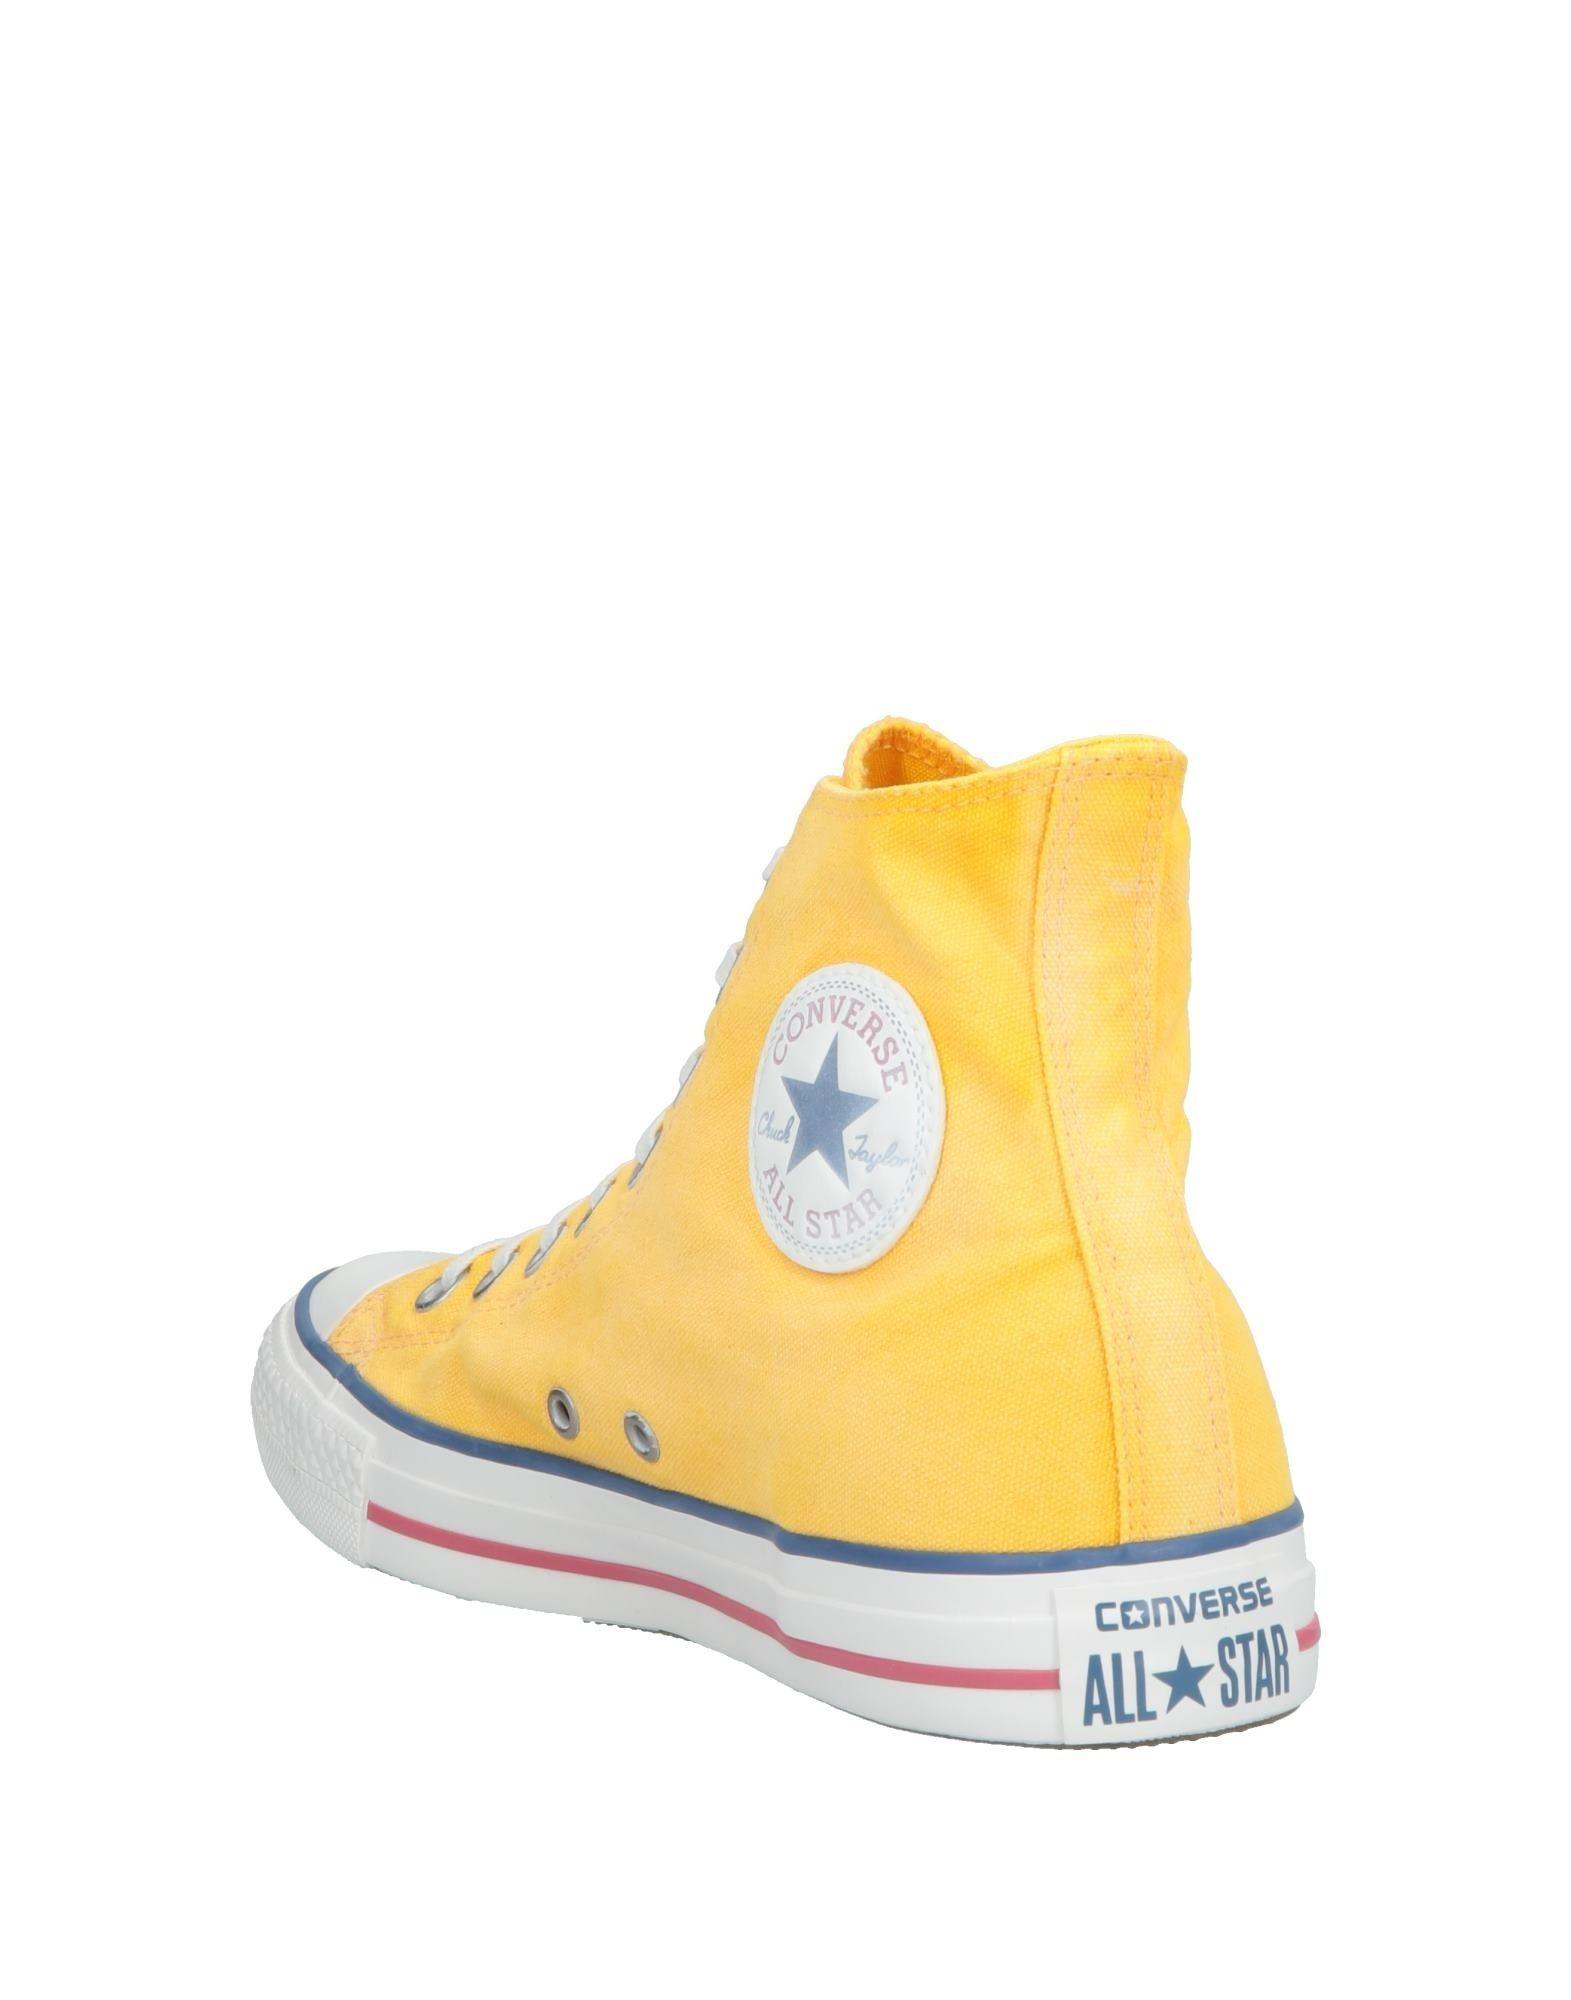 3c3ed679cfb Converse High-tops   Sneakers in Yellow for Men - Lyst